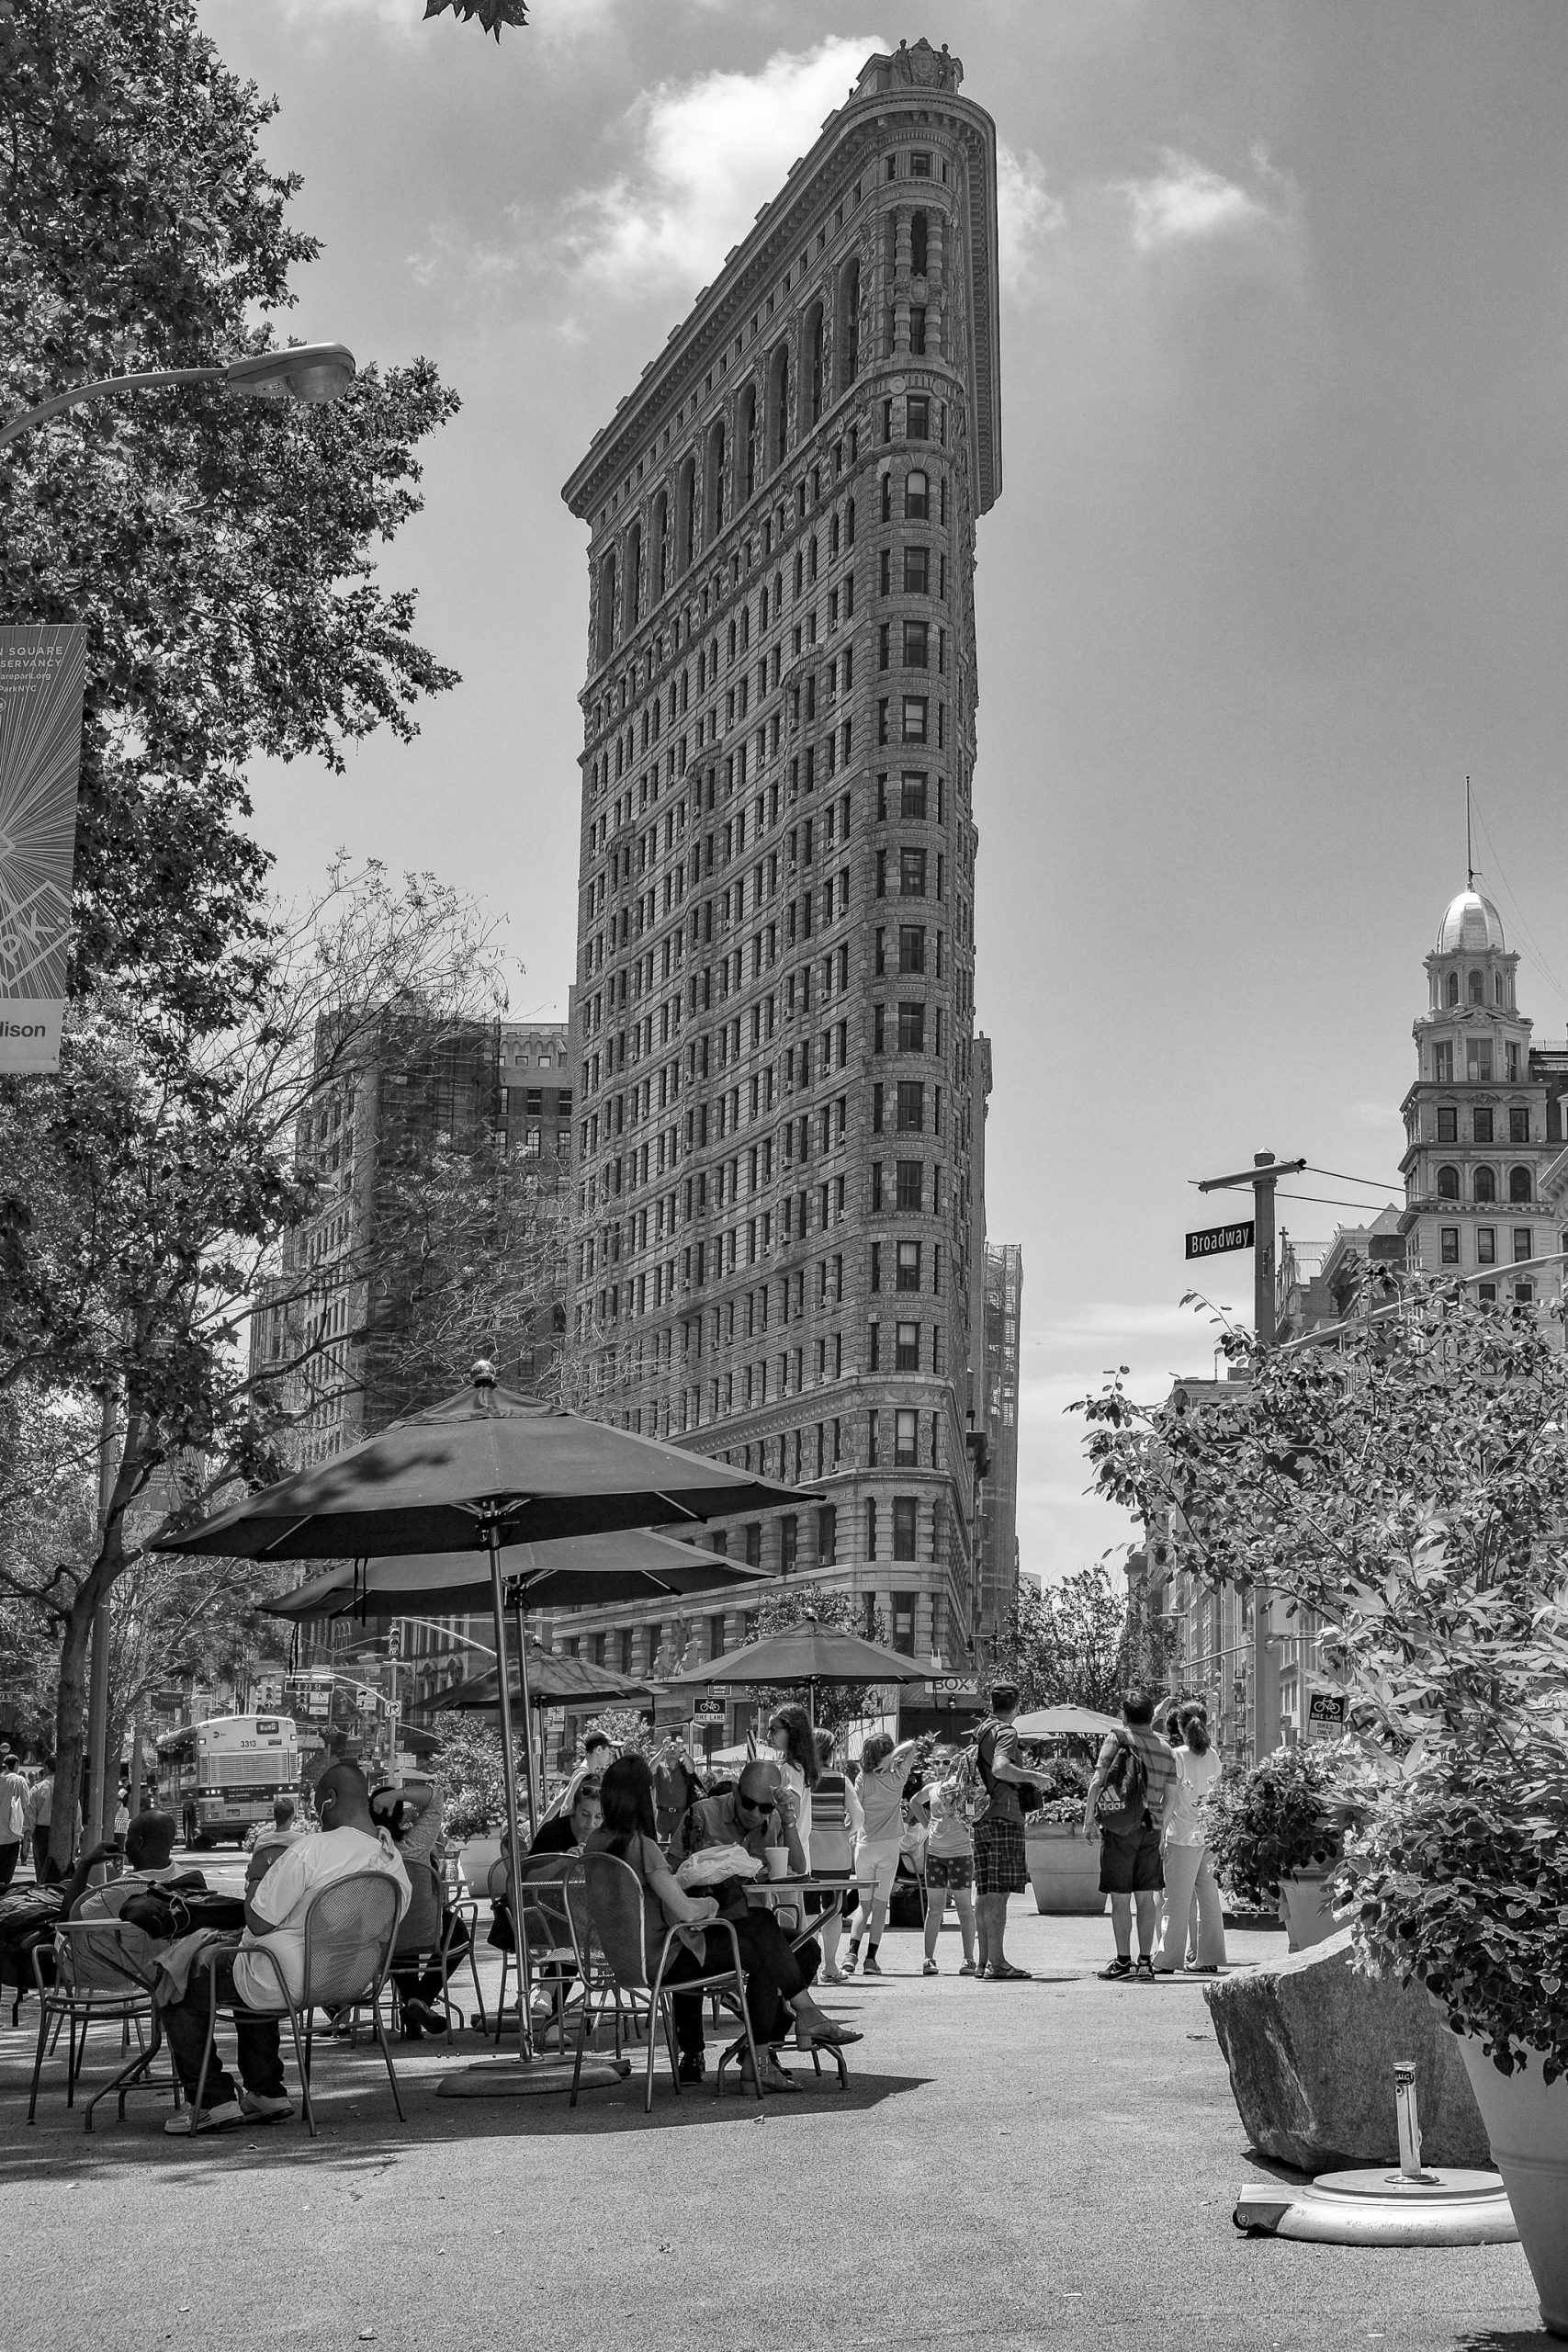 black and white photograph of the Flatiron building in Manhattan and the street scene in front of it, with people sitting at cafe tables